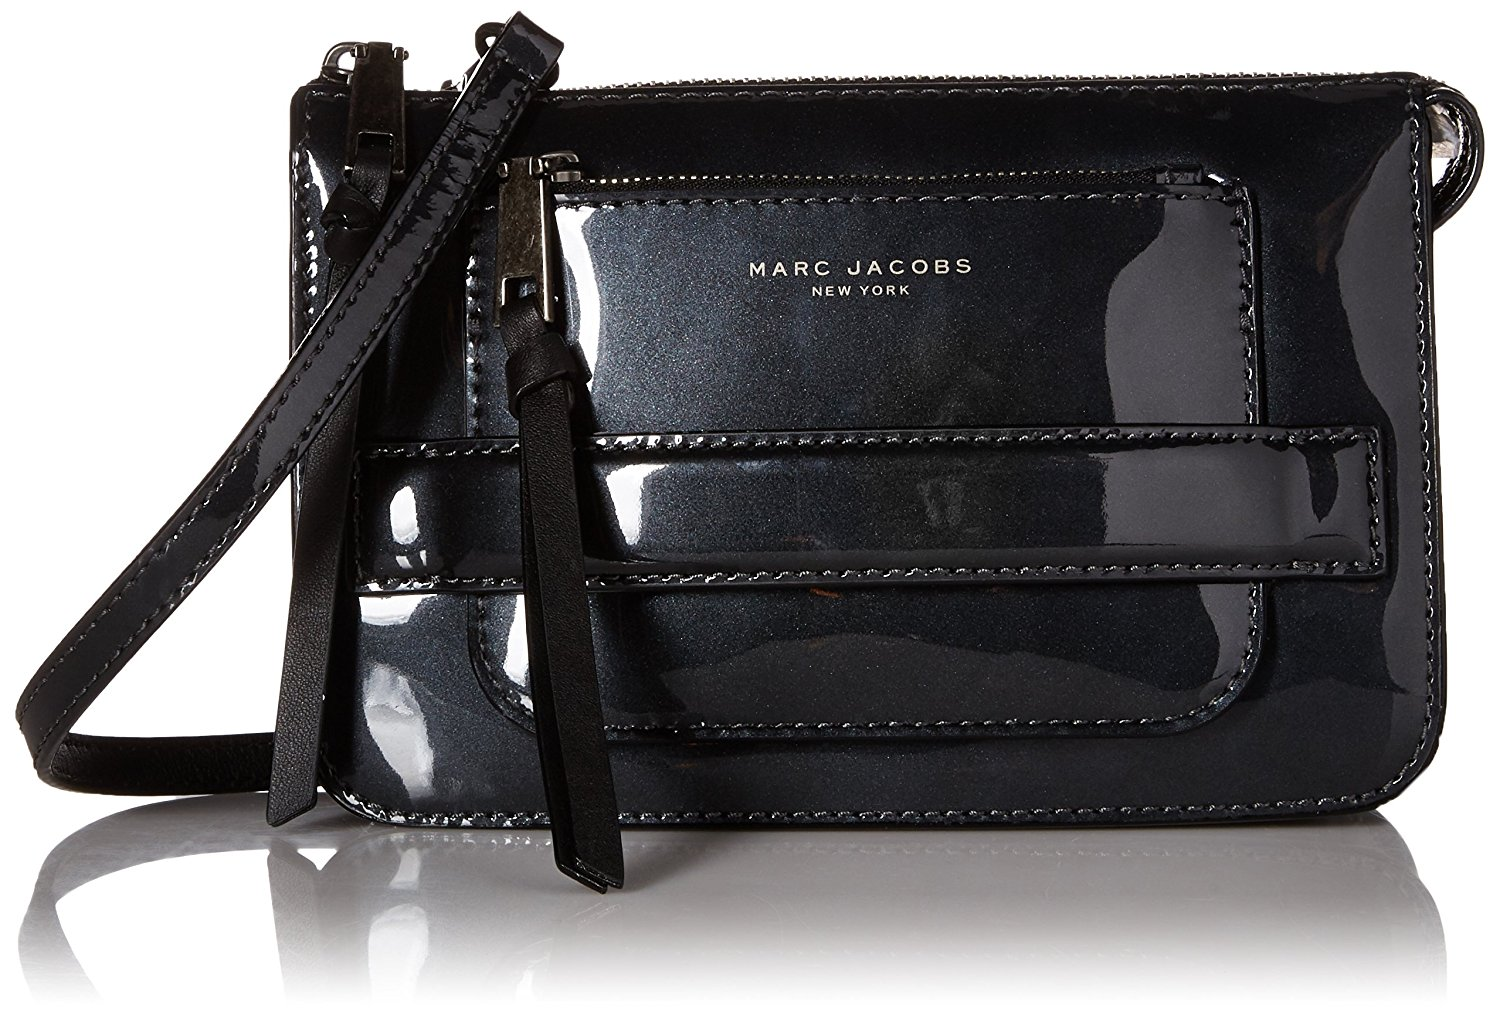 72add8607e Marc Jacobs Madison Patent Leather Crossbody Bag in Dark Silver ...